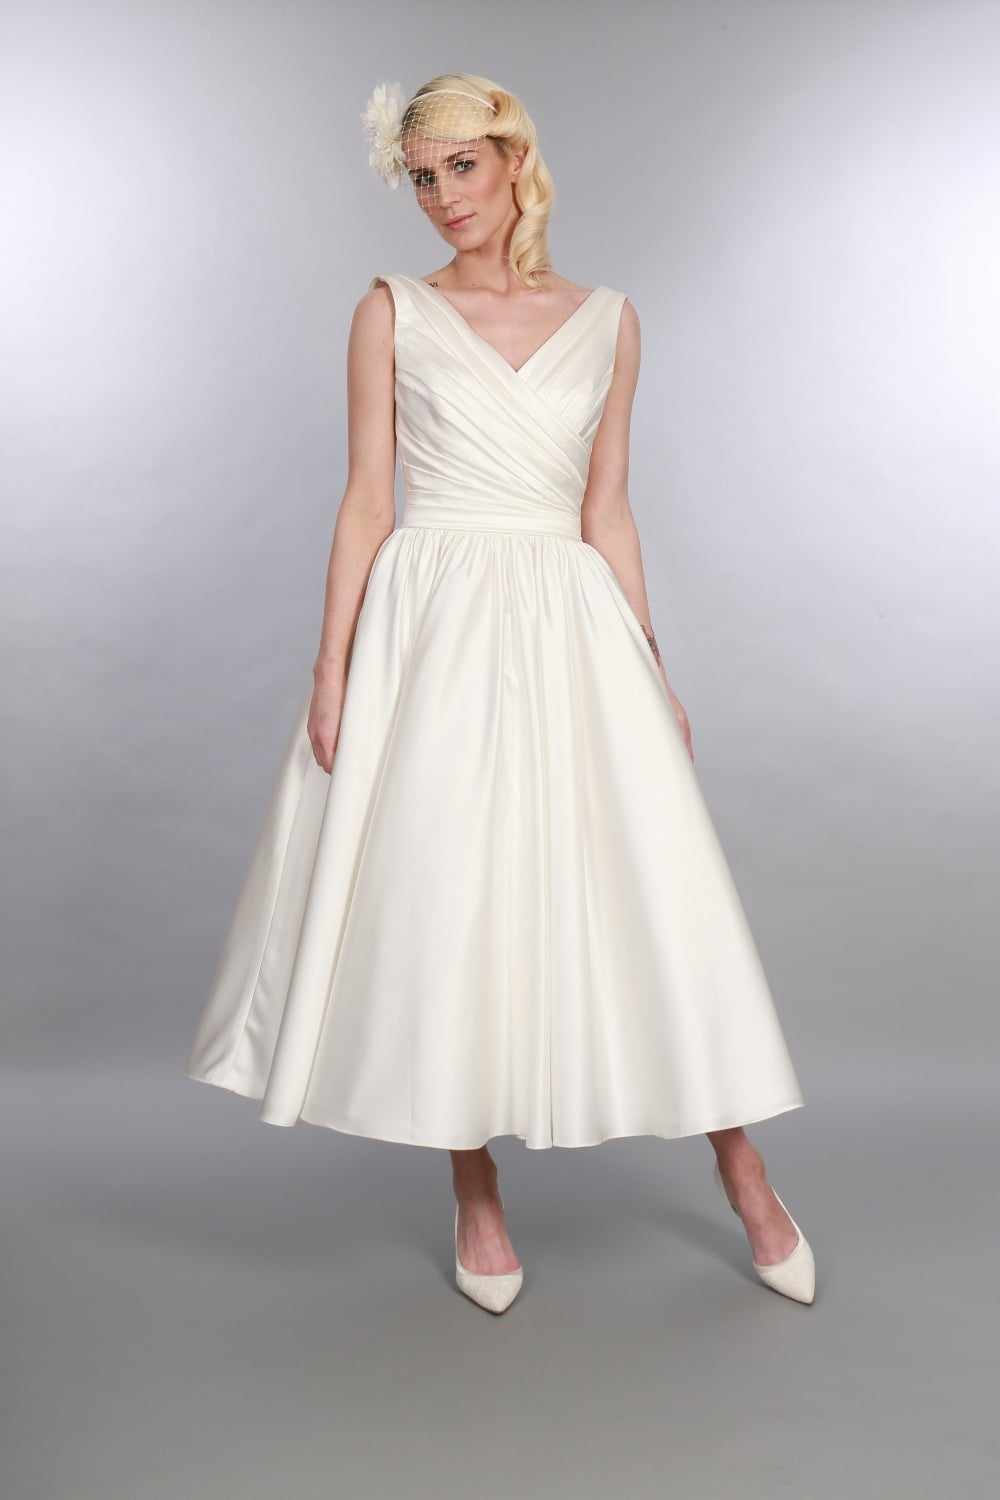 Betsy Satin Calf Length Wedding Dress with V Neck, 1950s Elegance